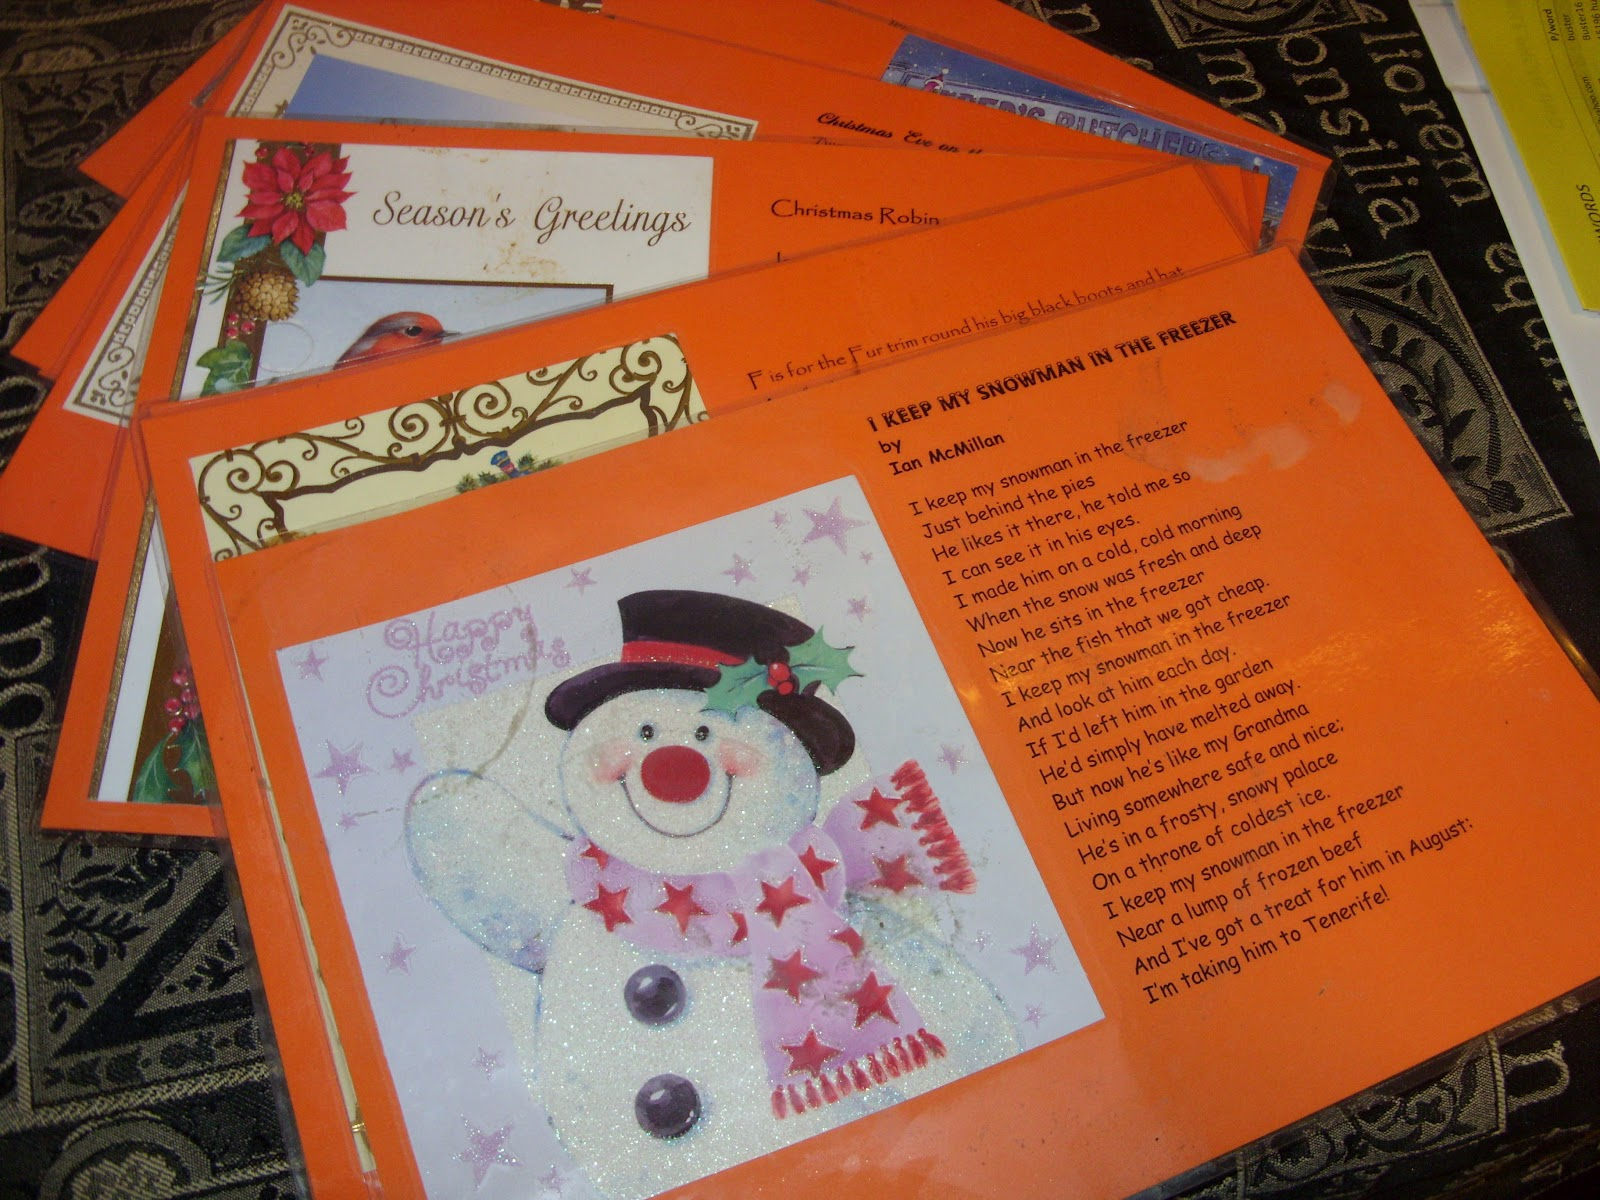 Life at the seaside lancashire england recycled for How to recycle old christmas cards